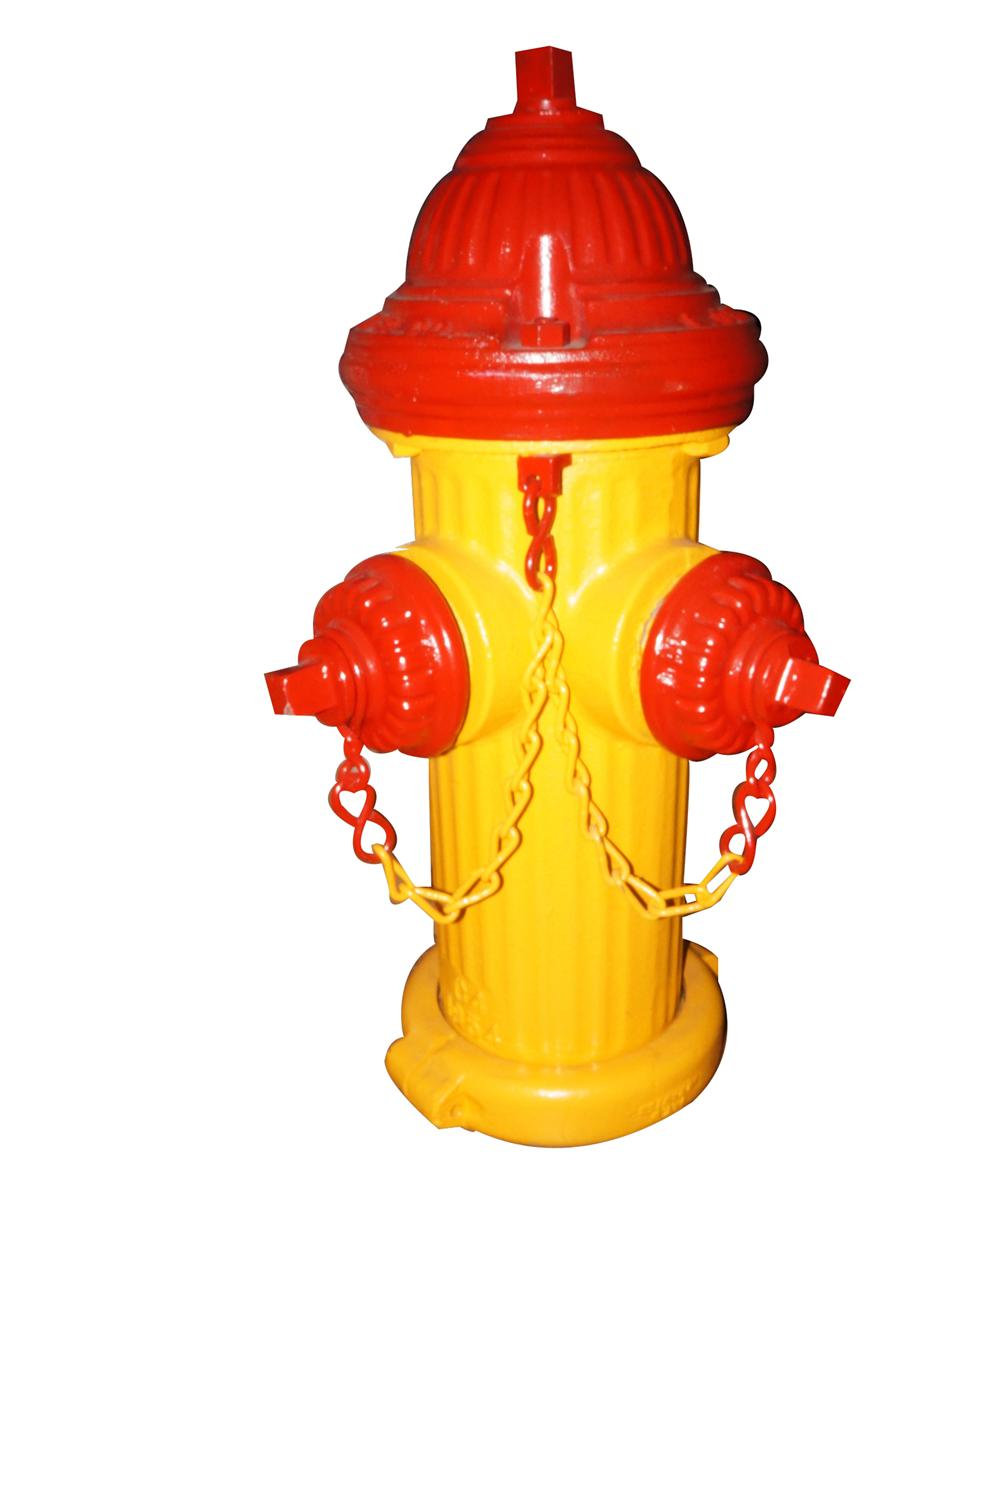 Nifty 1954 fire hydrant by A.P. Smith of New Jersey. - Front 3/4 - 139759